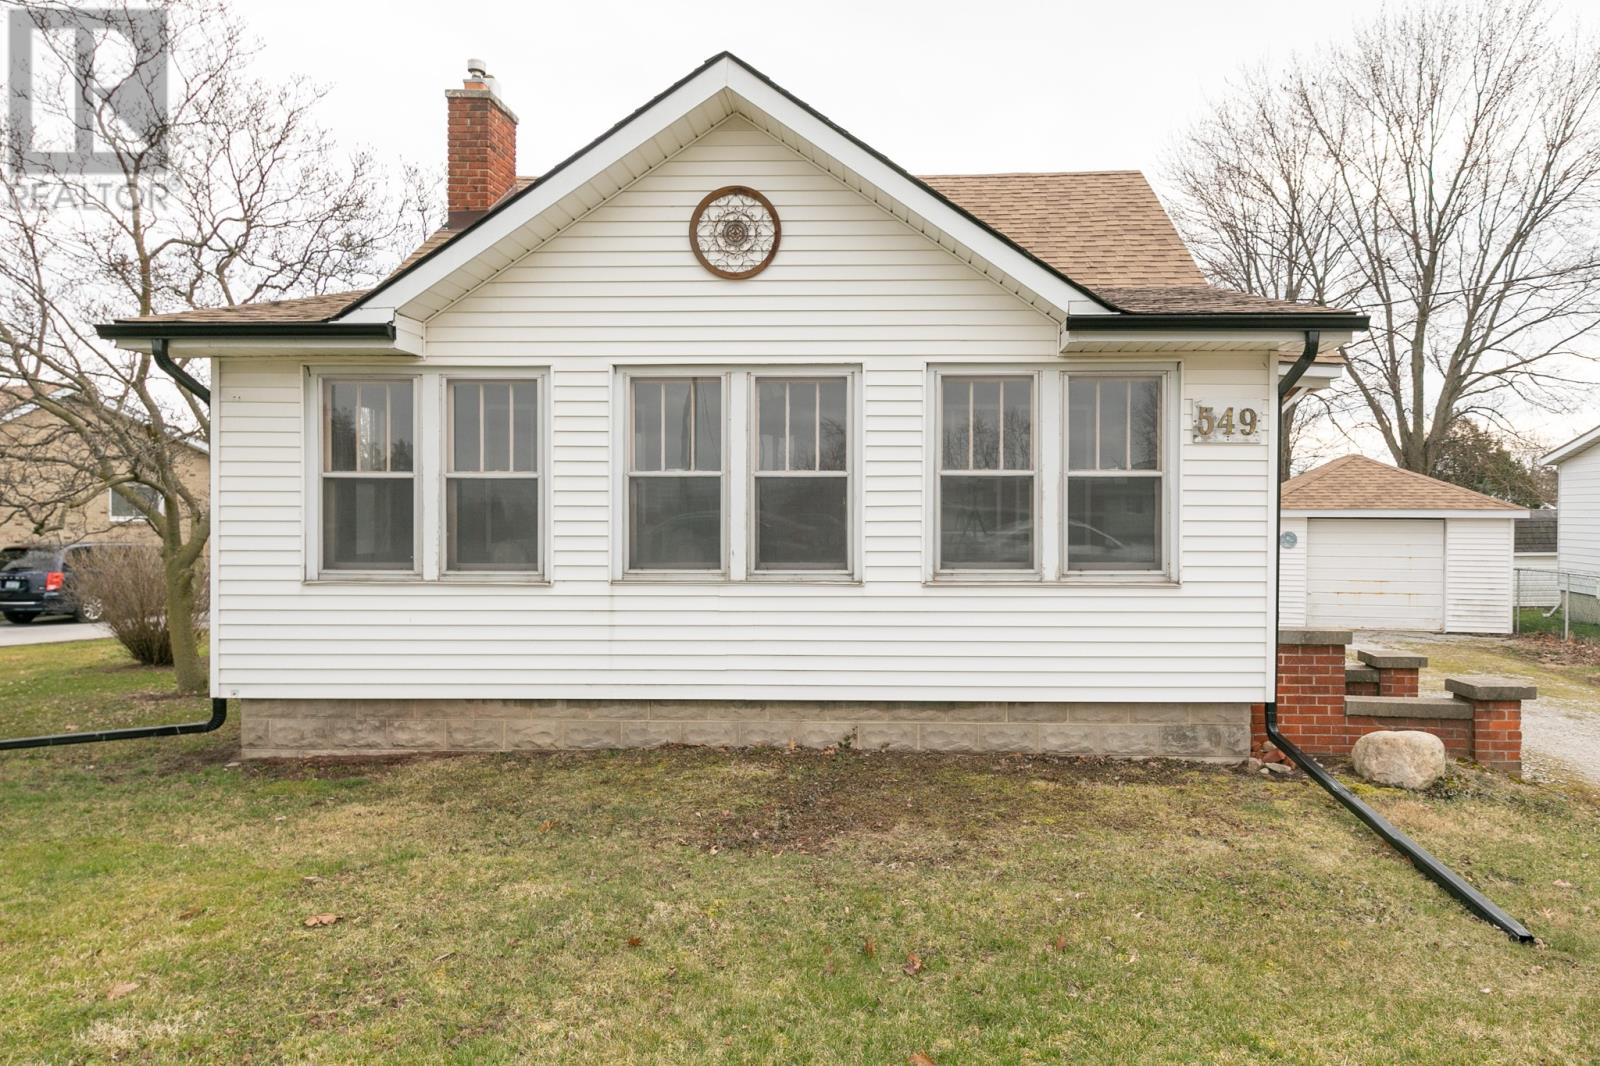 Removed: 549 County Rd 34 W, Essex, ON - Removed on 2020-04-01 06:21:21